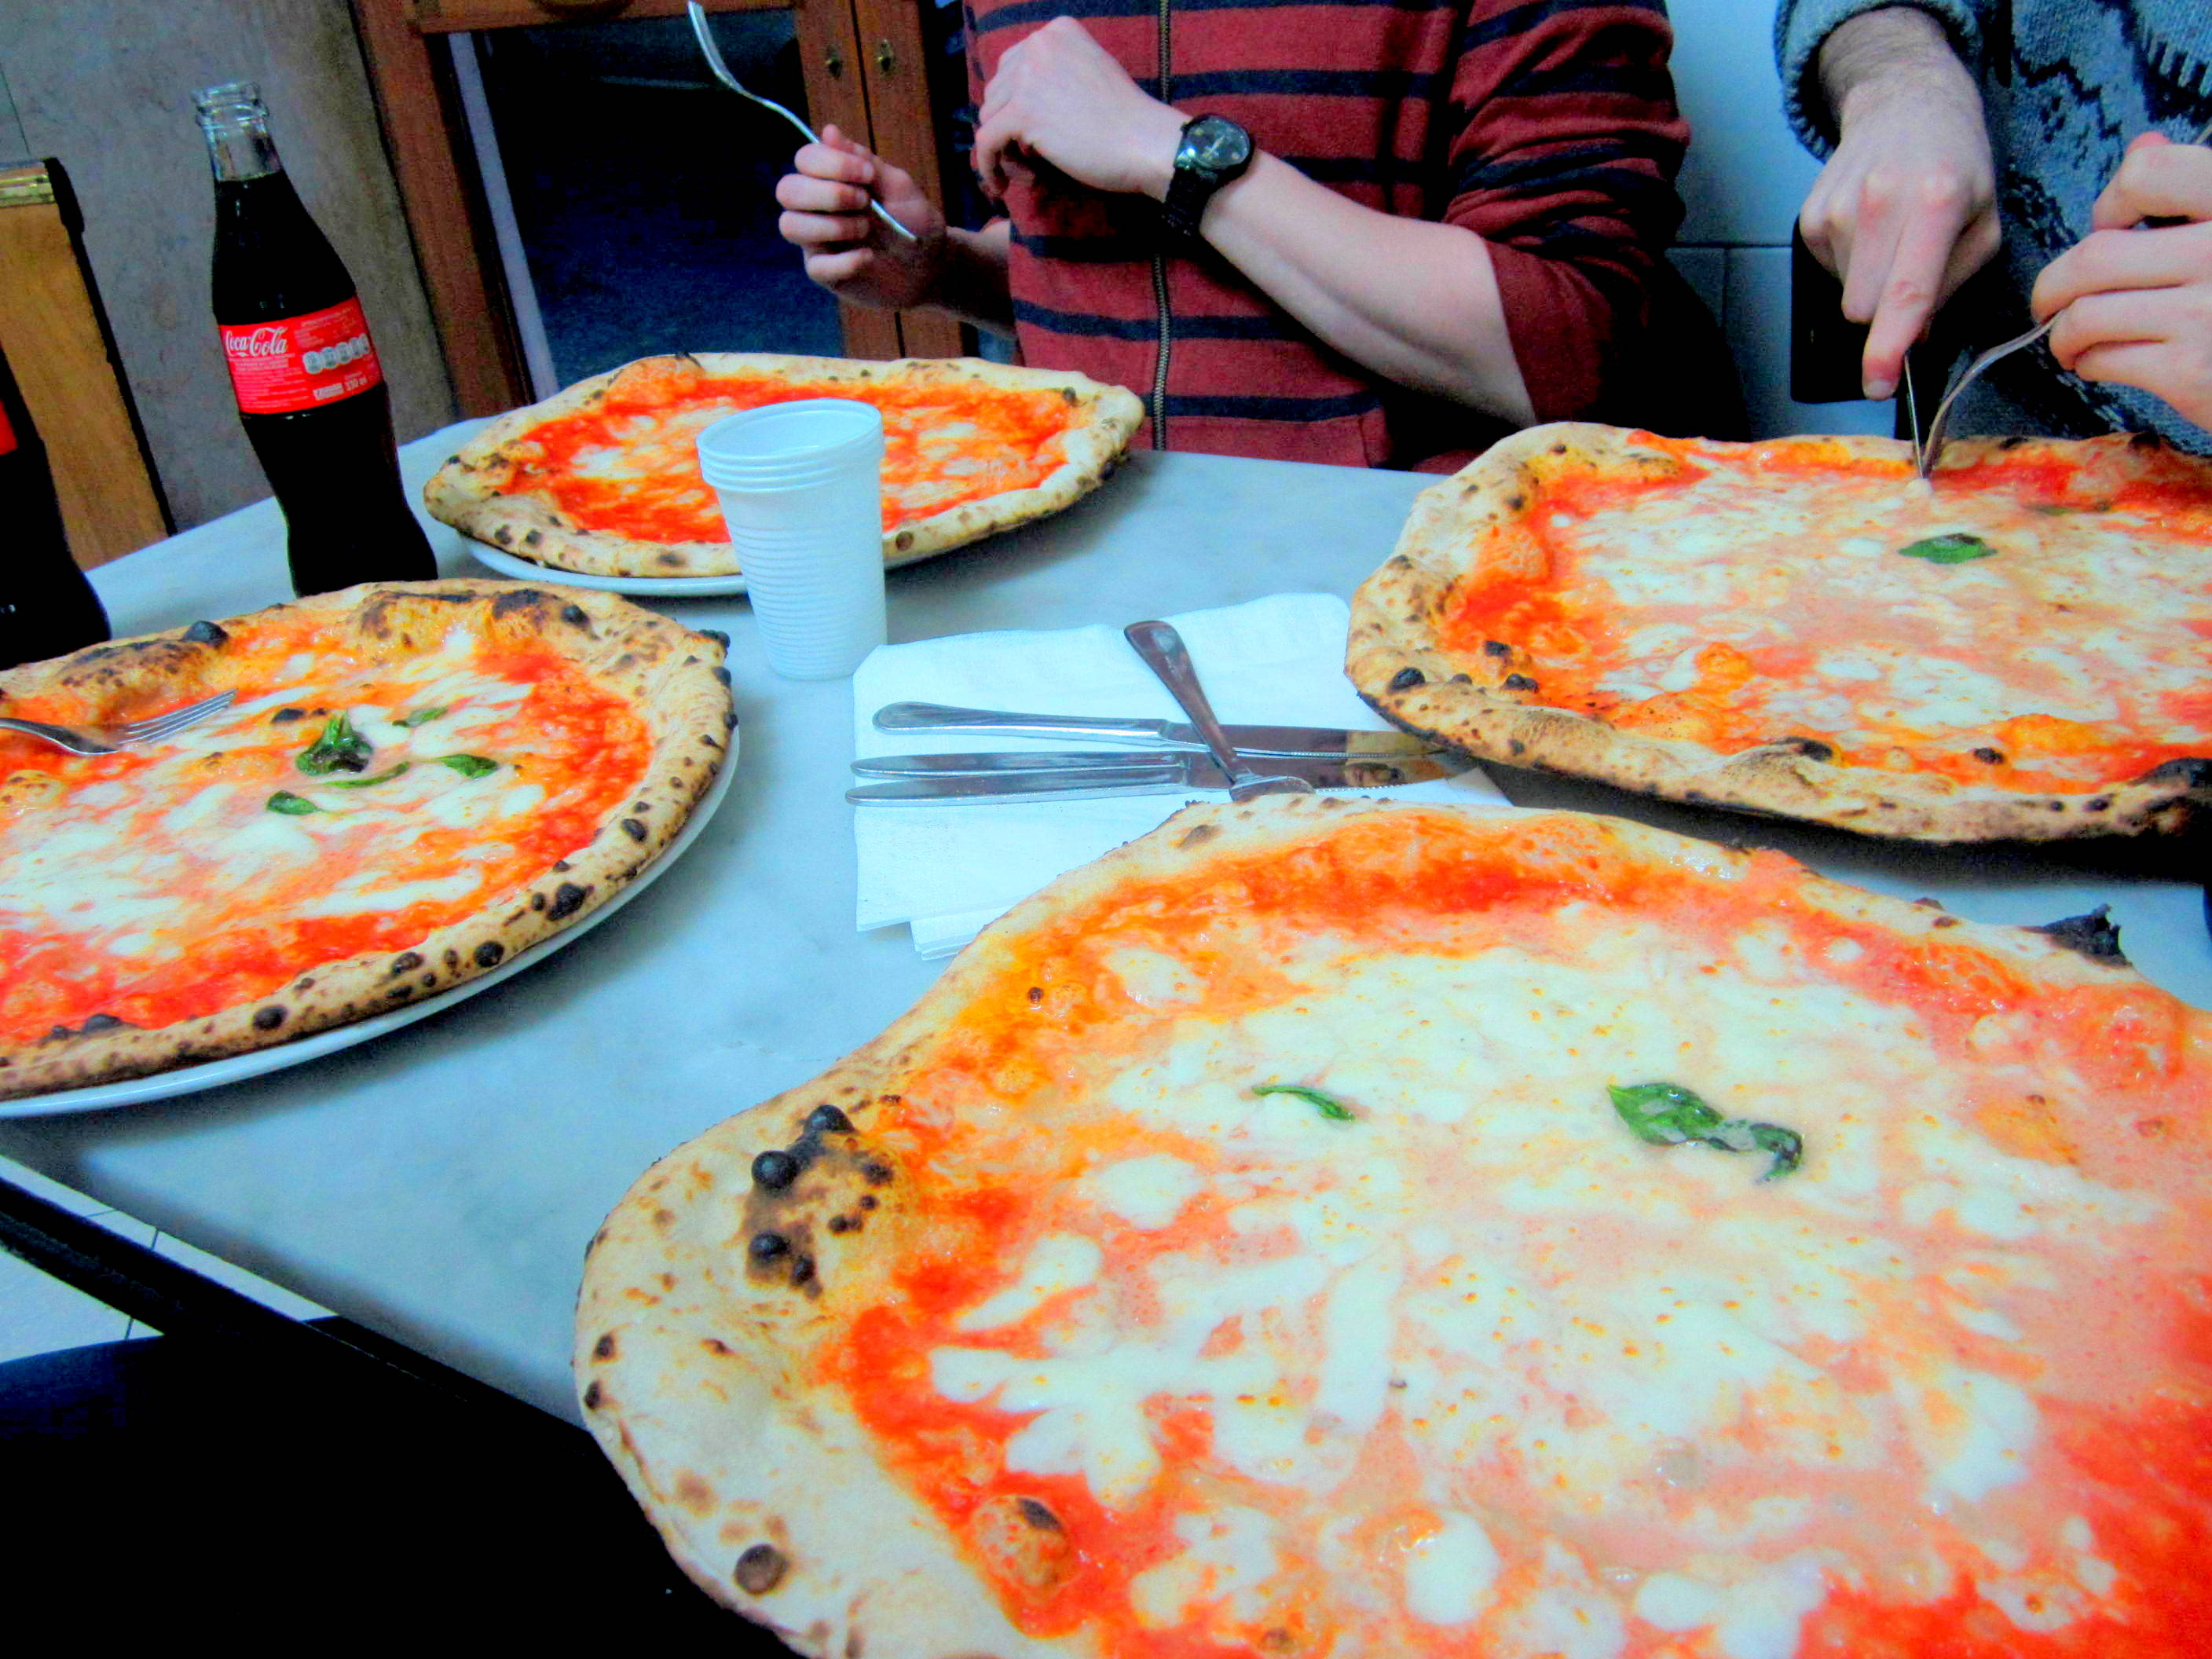 (The birthplace of pizza) Naples, Italy